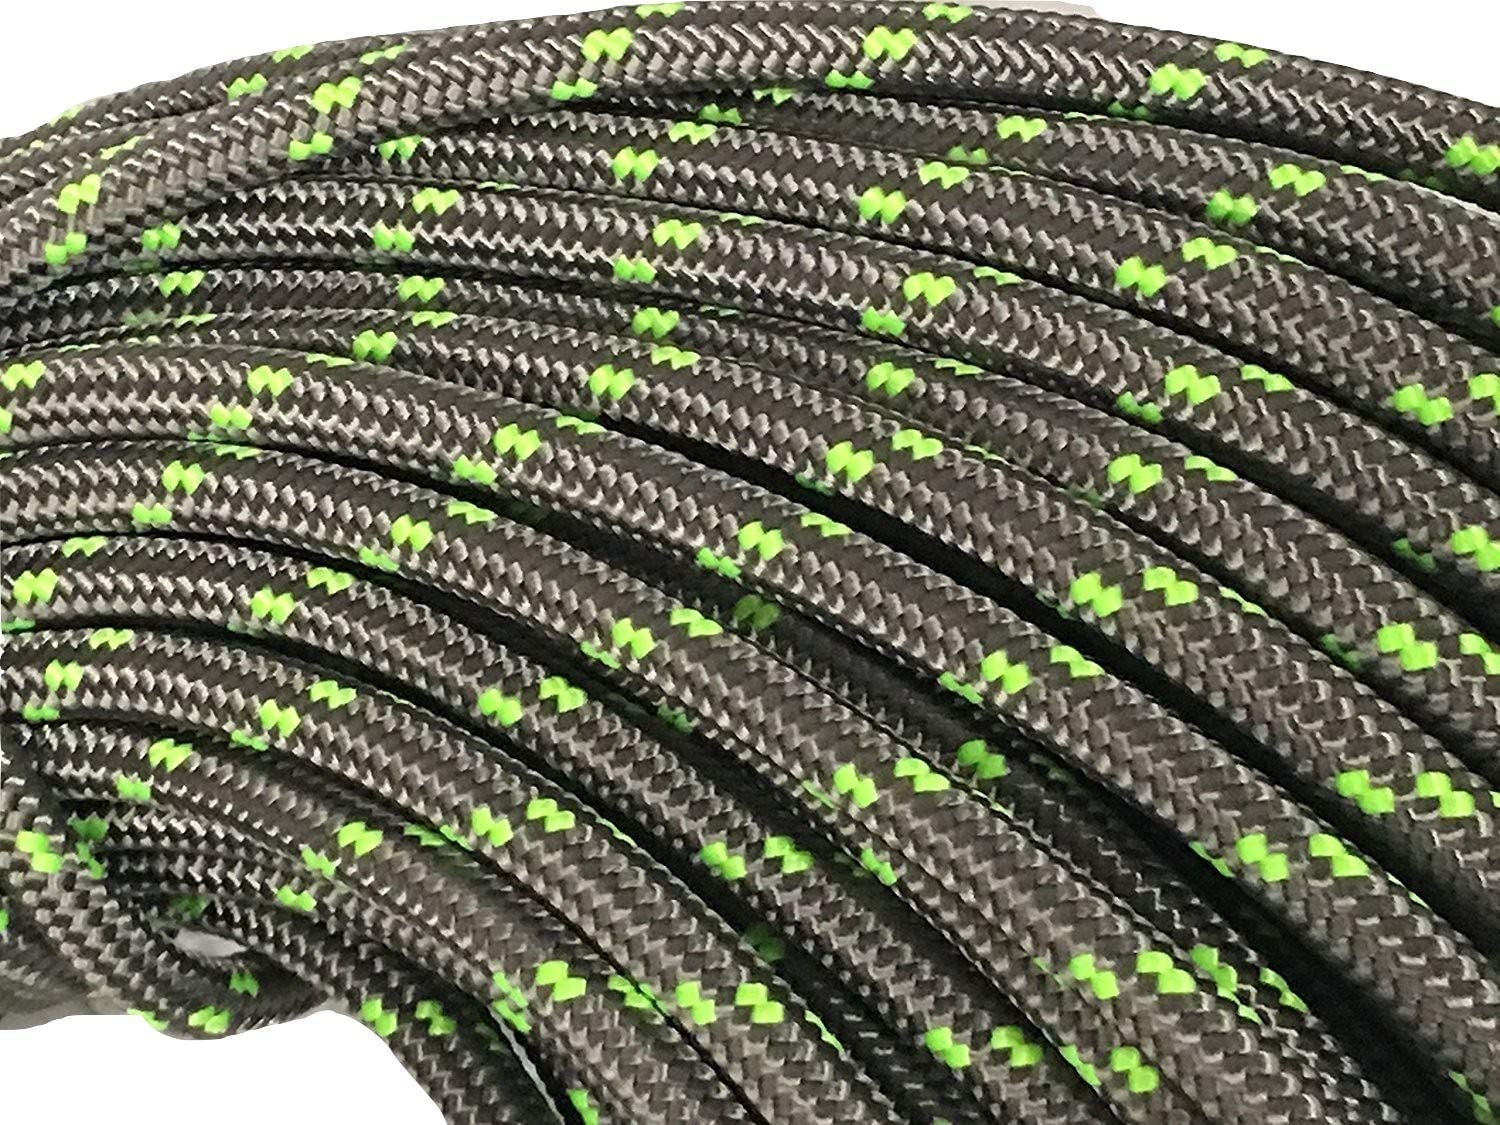 Arborist Double Braid Poly Rope 2 150' New products, world's highest quality popular! Max 53% OFF Inch Platinum 1